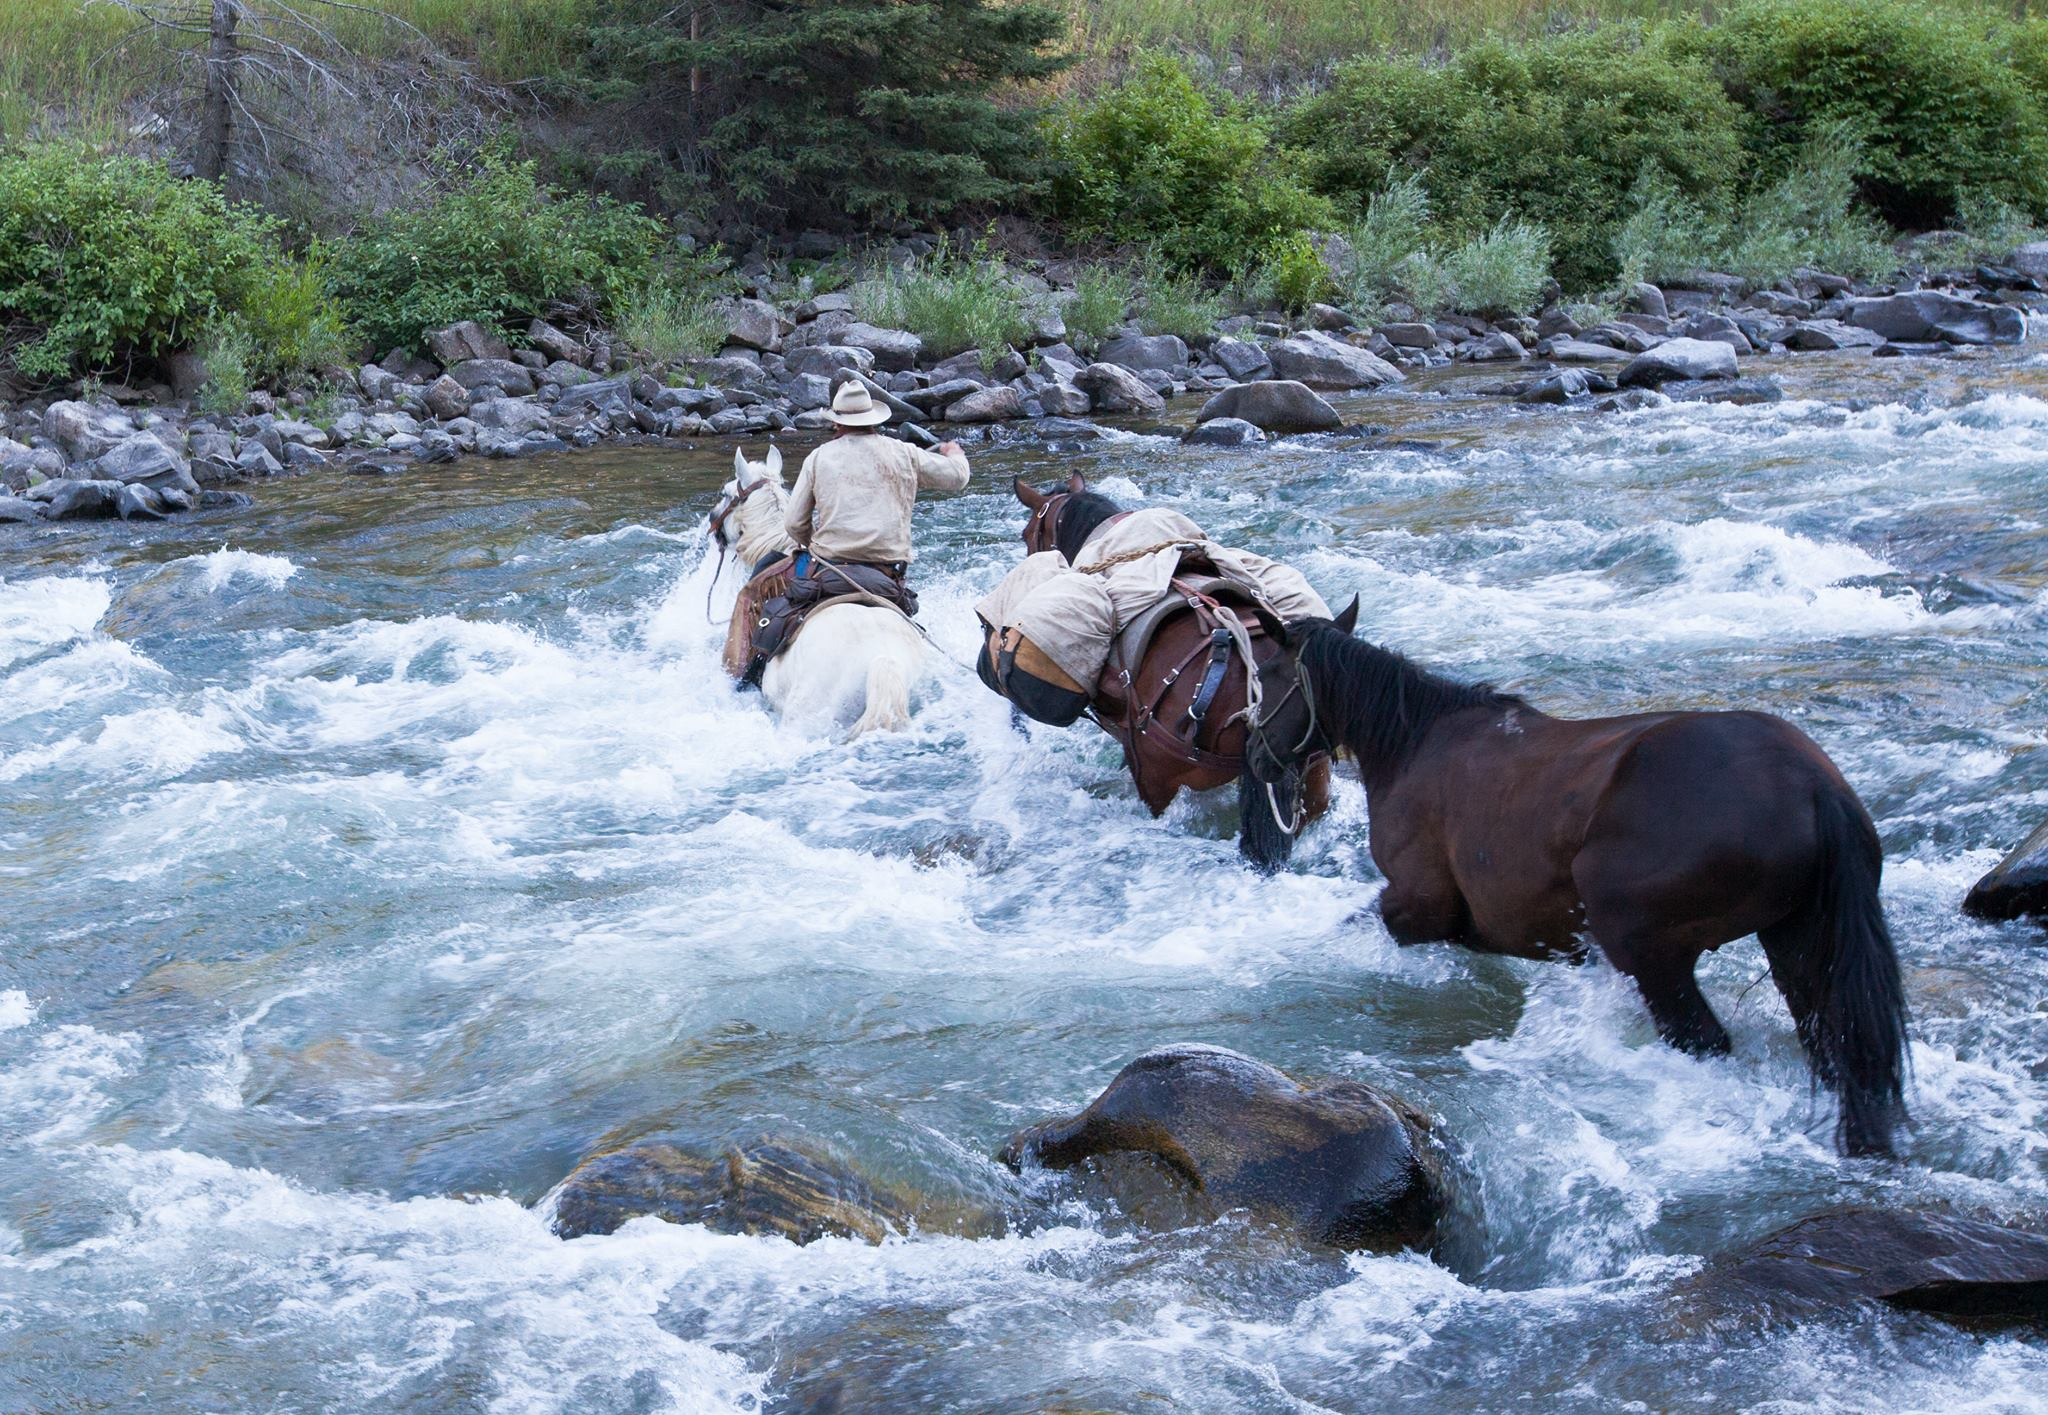 There was a cliff face on one side of the river and a highway on the other. We had no choice but to ride straight upstream…